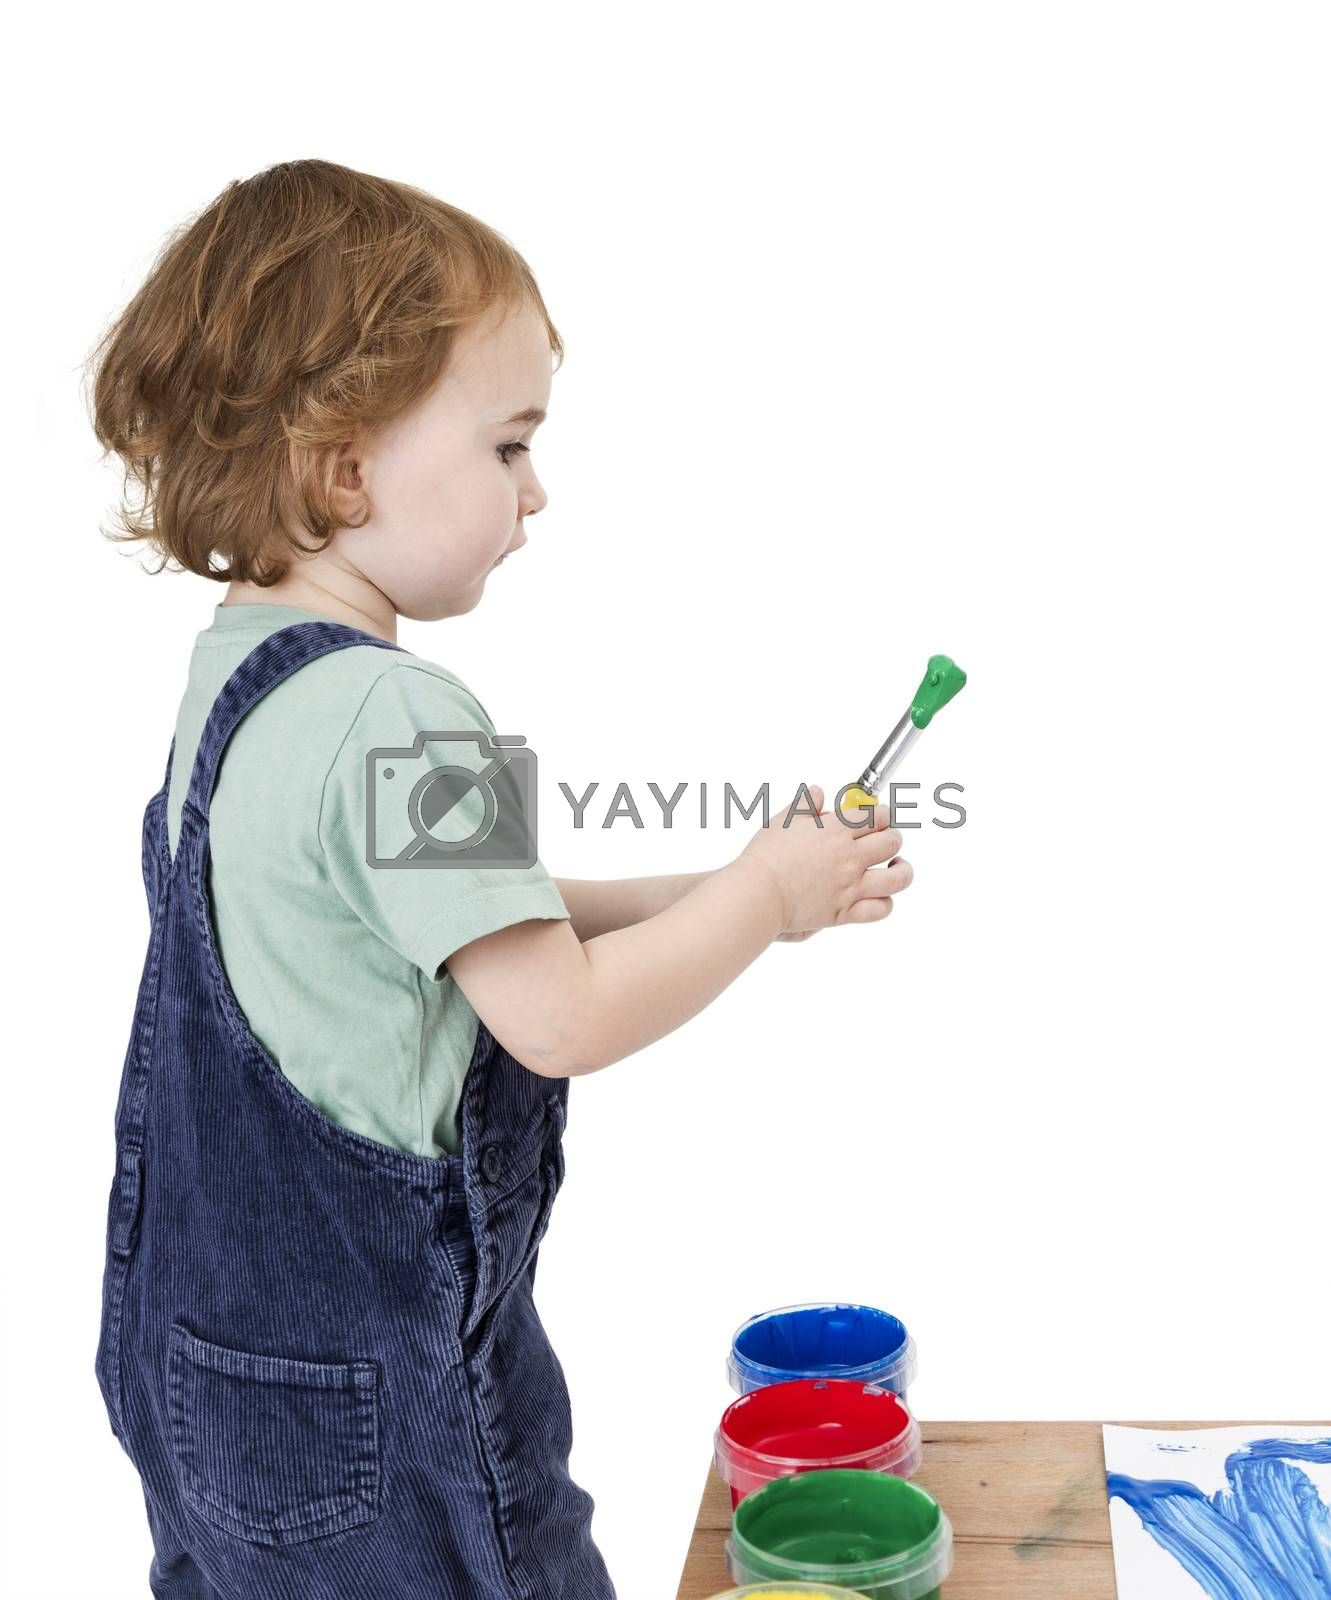 child with brush and green paint isolated on white background. Studio shot